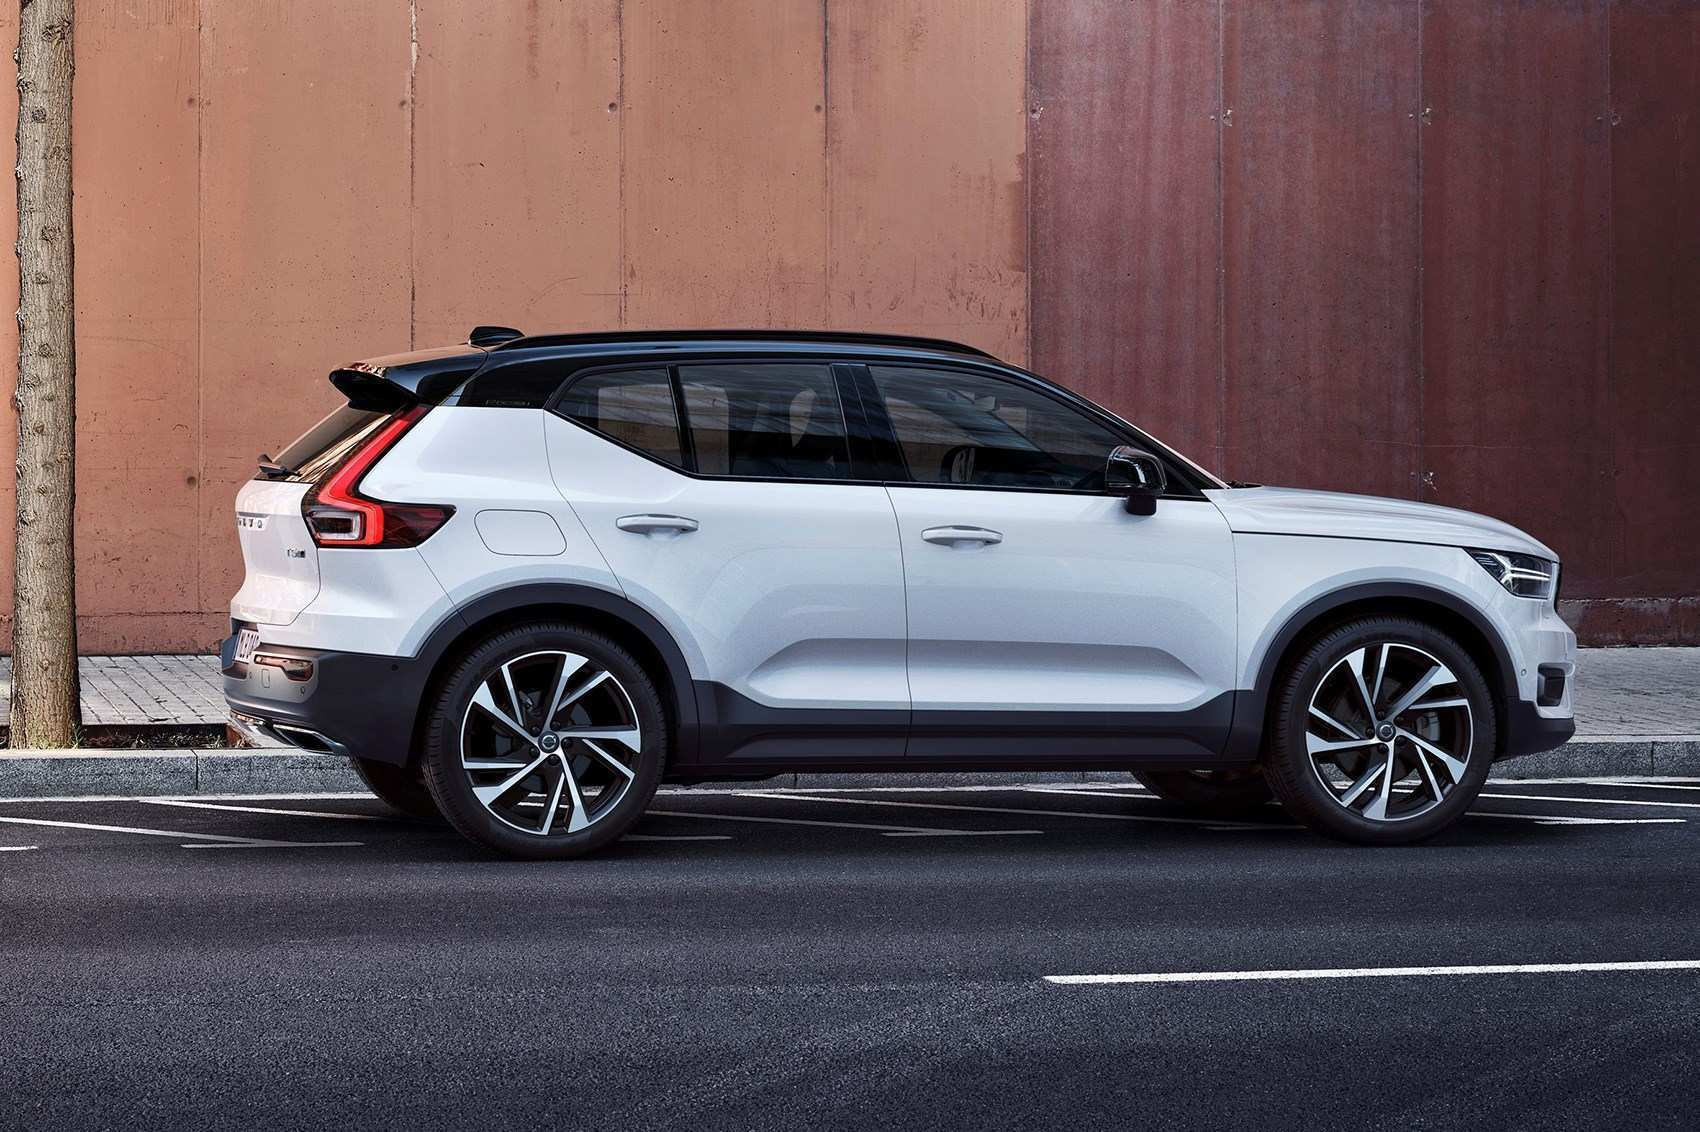 85 The Best When Will 2020 Volvo Xc40 Be Available Rumors